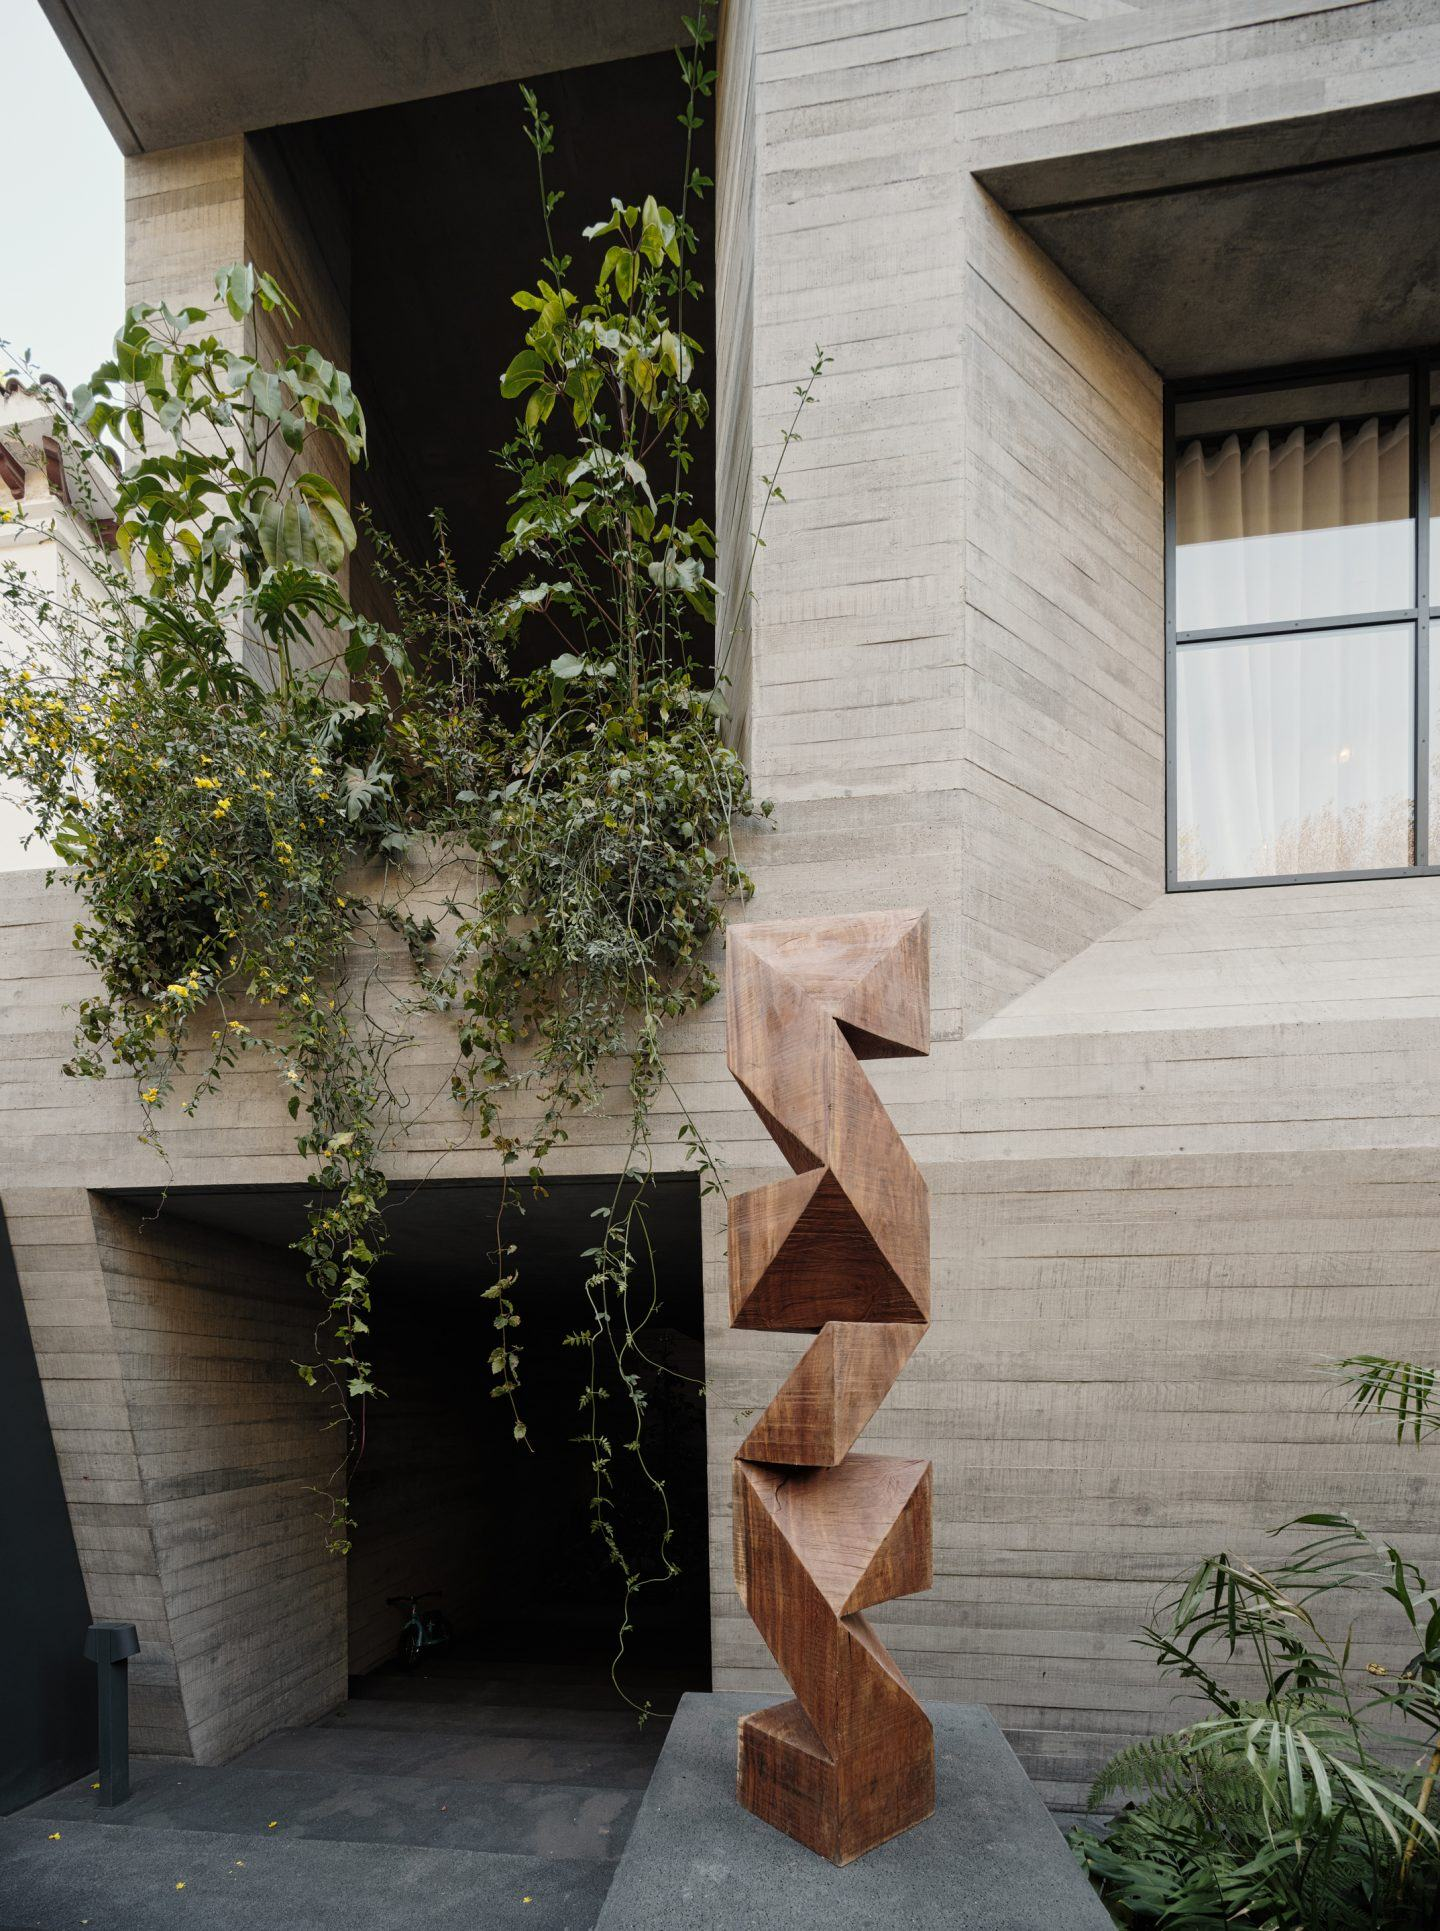 IGNANT-Architecture-StudioRickJoy-Polanco-18